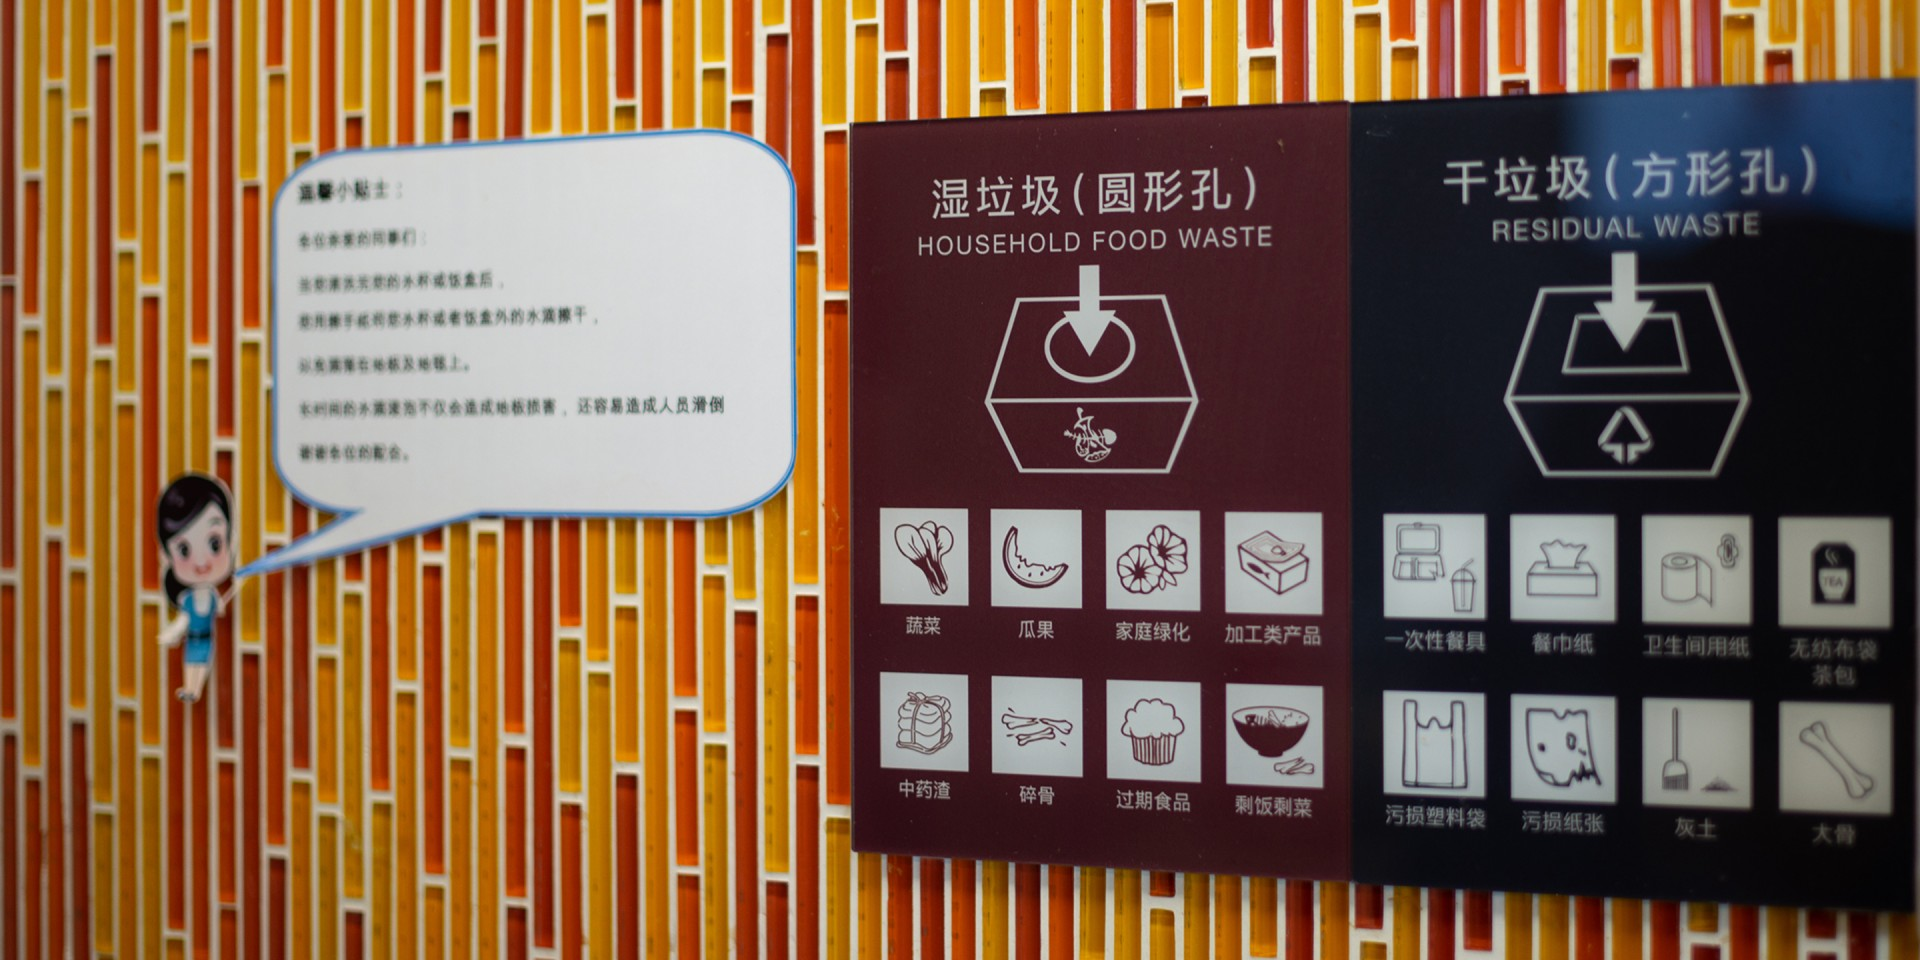 A sign showing how to sort waste at WACKER Shanghai